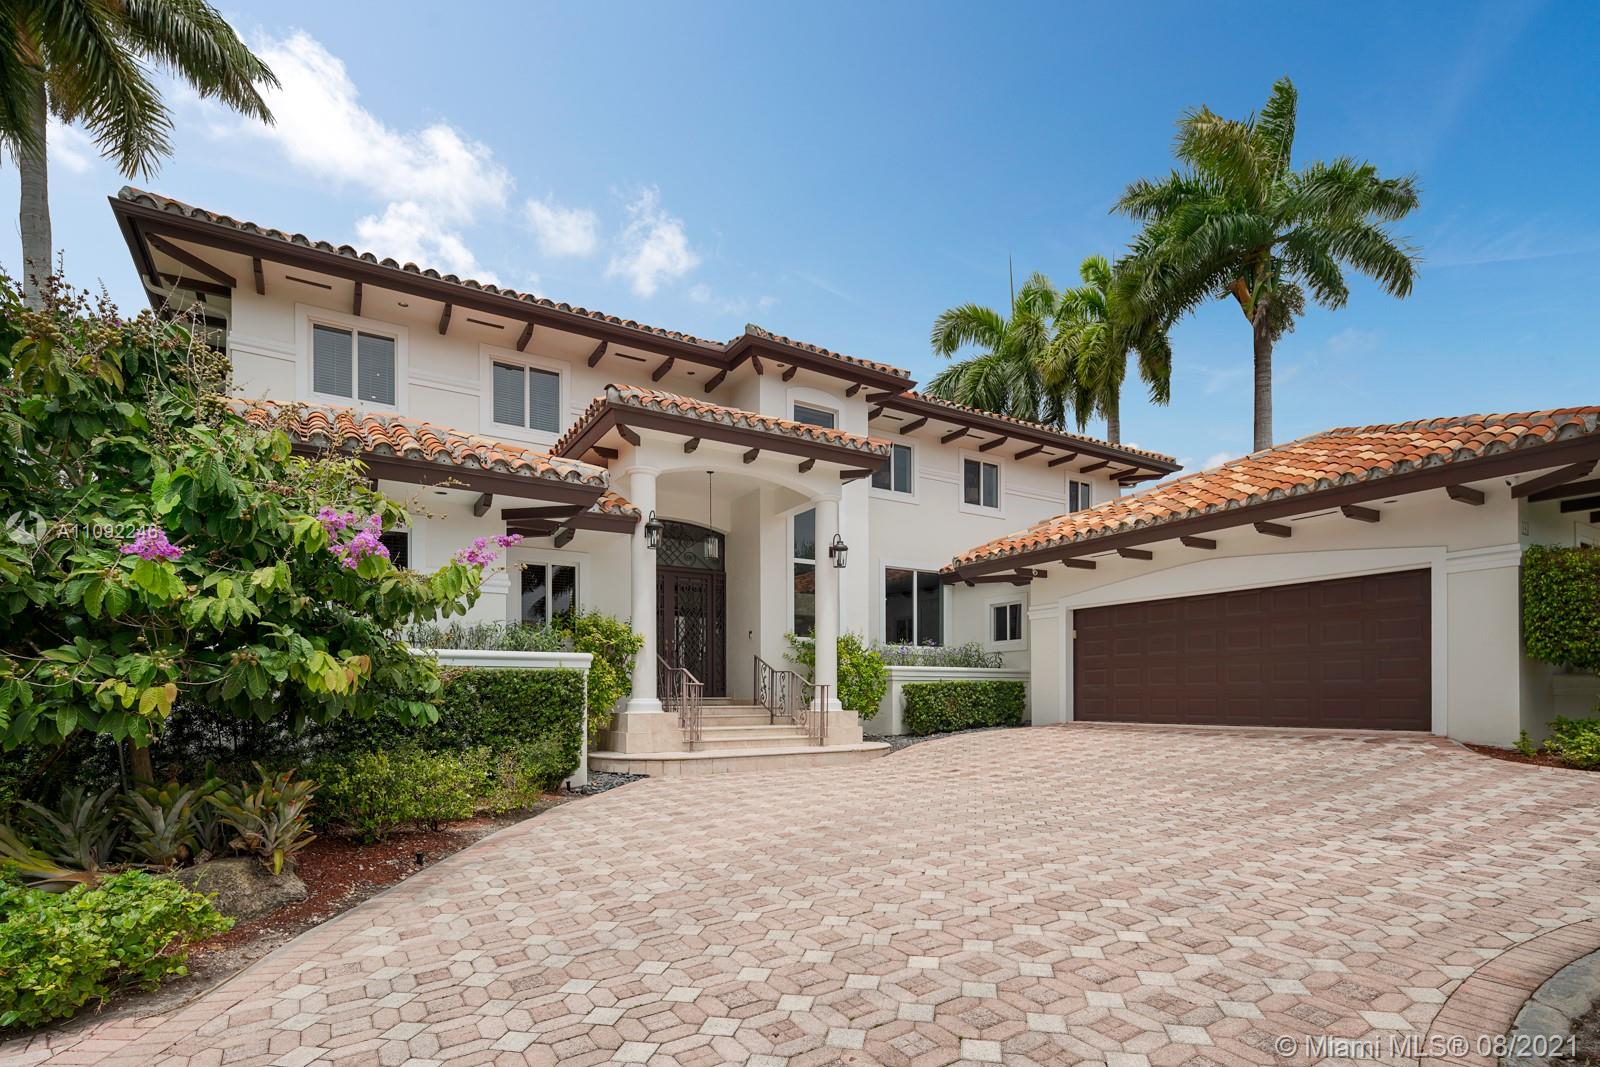 This beautiful 6 bedroom 5 1/2 bathroom Mediterrenean style home is located in one of Coral Gables most sought after gated communities Islands of Cocoplum. The home sits on a quiet cul-de-sac with backyard access to the clubhouse, gym, basketball courts, pool & childrens playground. Other amenities include guardhouse w/ gated entry, 24hrs security, patrols, first class lighted clay tennis courts & volleyball court. New kitchen w/ viking appliances, large island & eat-in kitchen opened to family room with spectacular view of terrace with pool & built-in grill. 2 bedroom, 2 1/2 baths & laundry room located on 1st floor. Large Master bedroom w/ sitting area & spa-like bathroom. Formal dining & living room with wet bar & wine cooler for entertaining. A truly great family home!